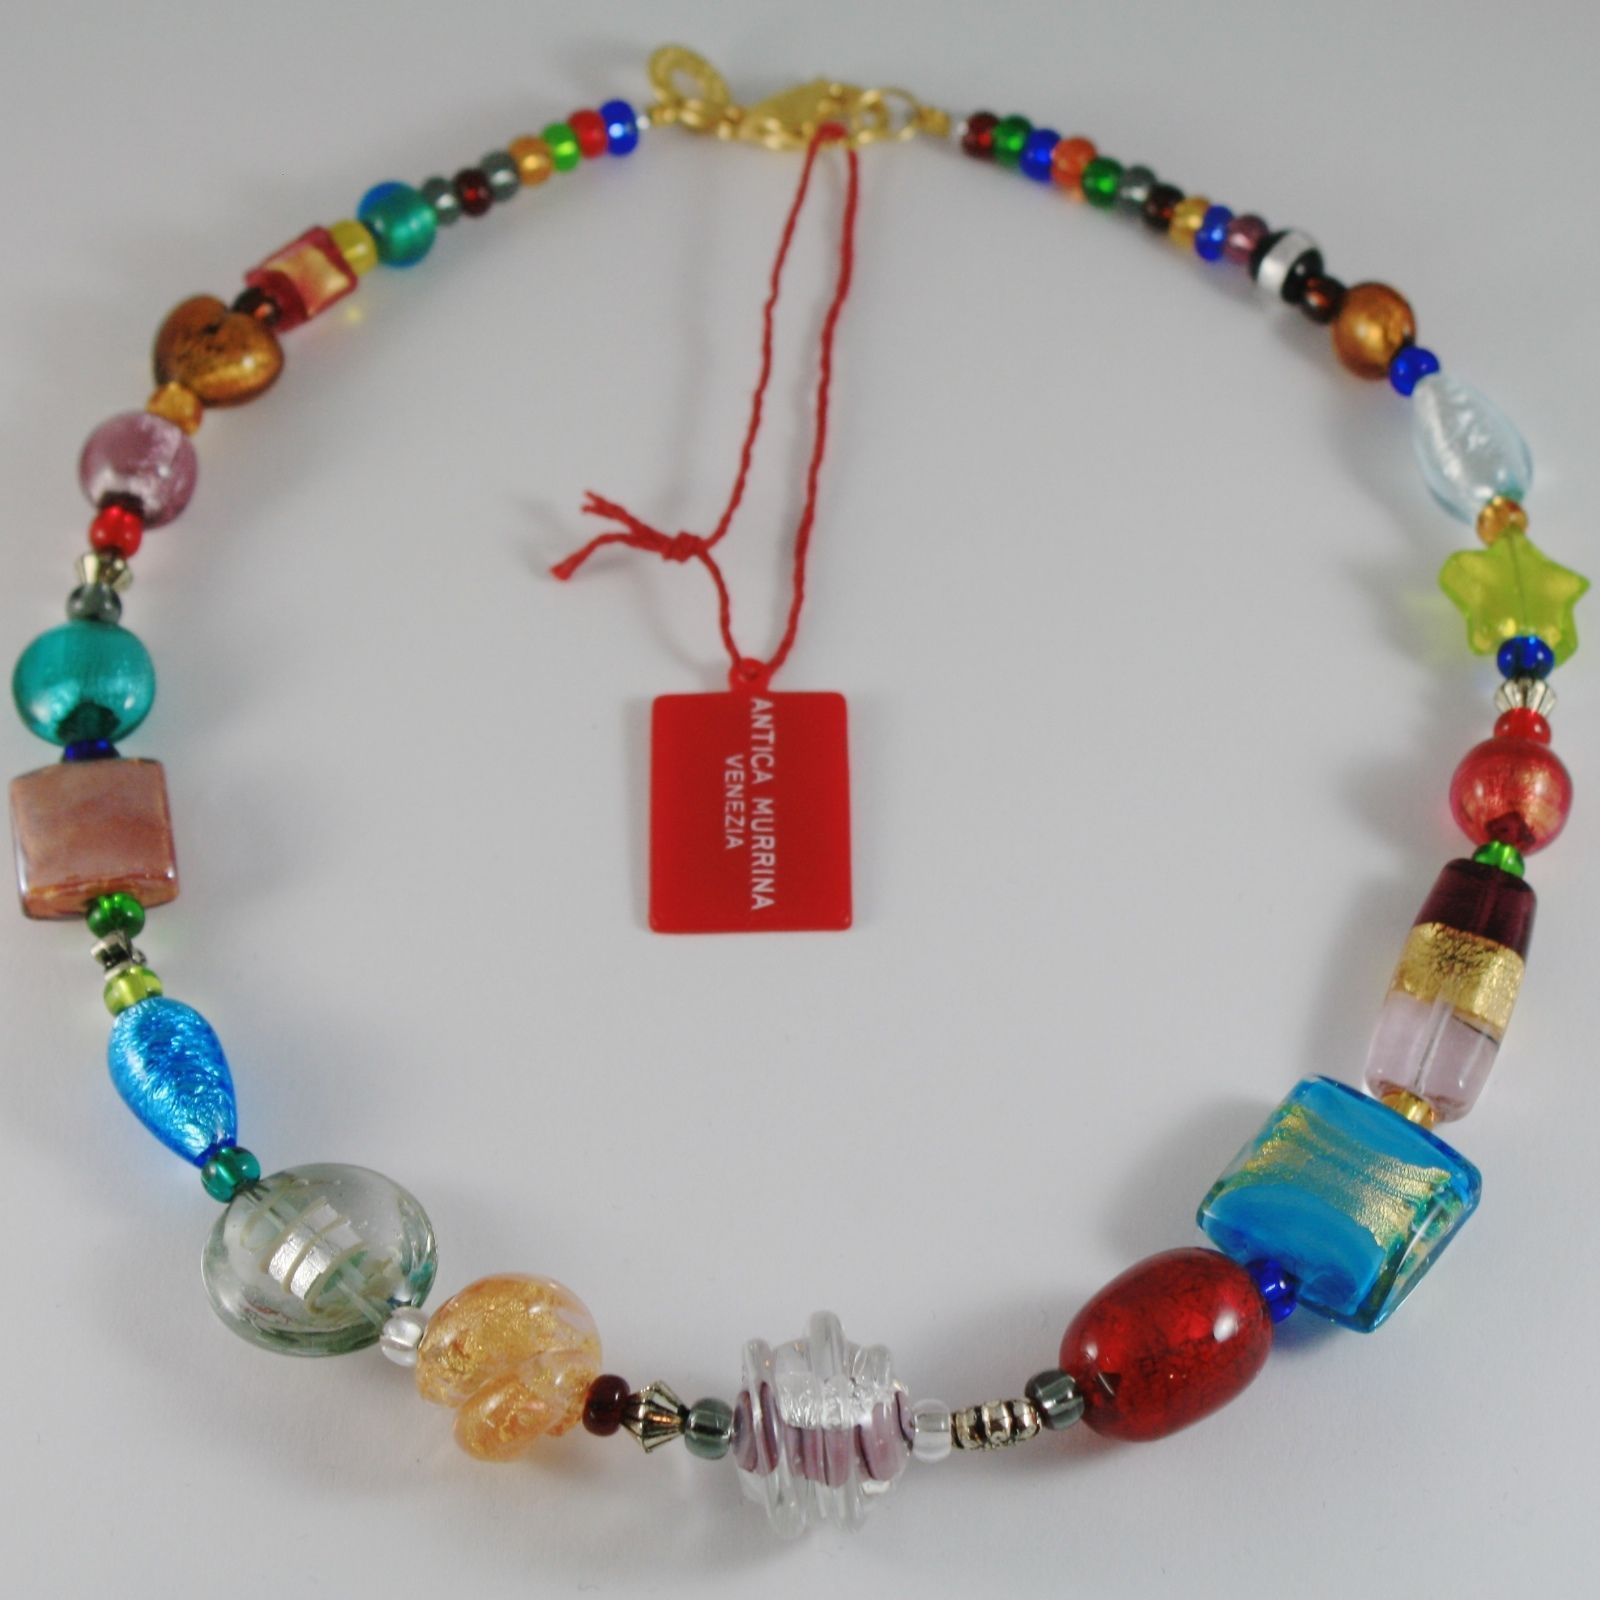 COLLAR ANTICA MURRINA VENEZIA CON CRISTAL DE MURANO MULTICOLOR LARGO 50 CM